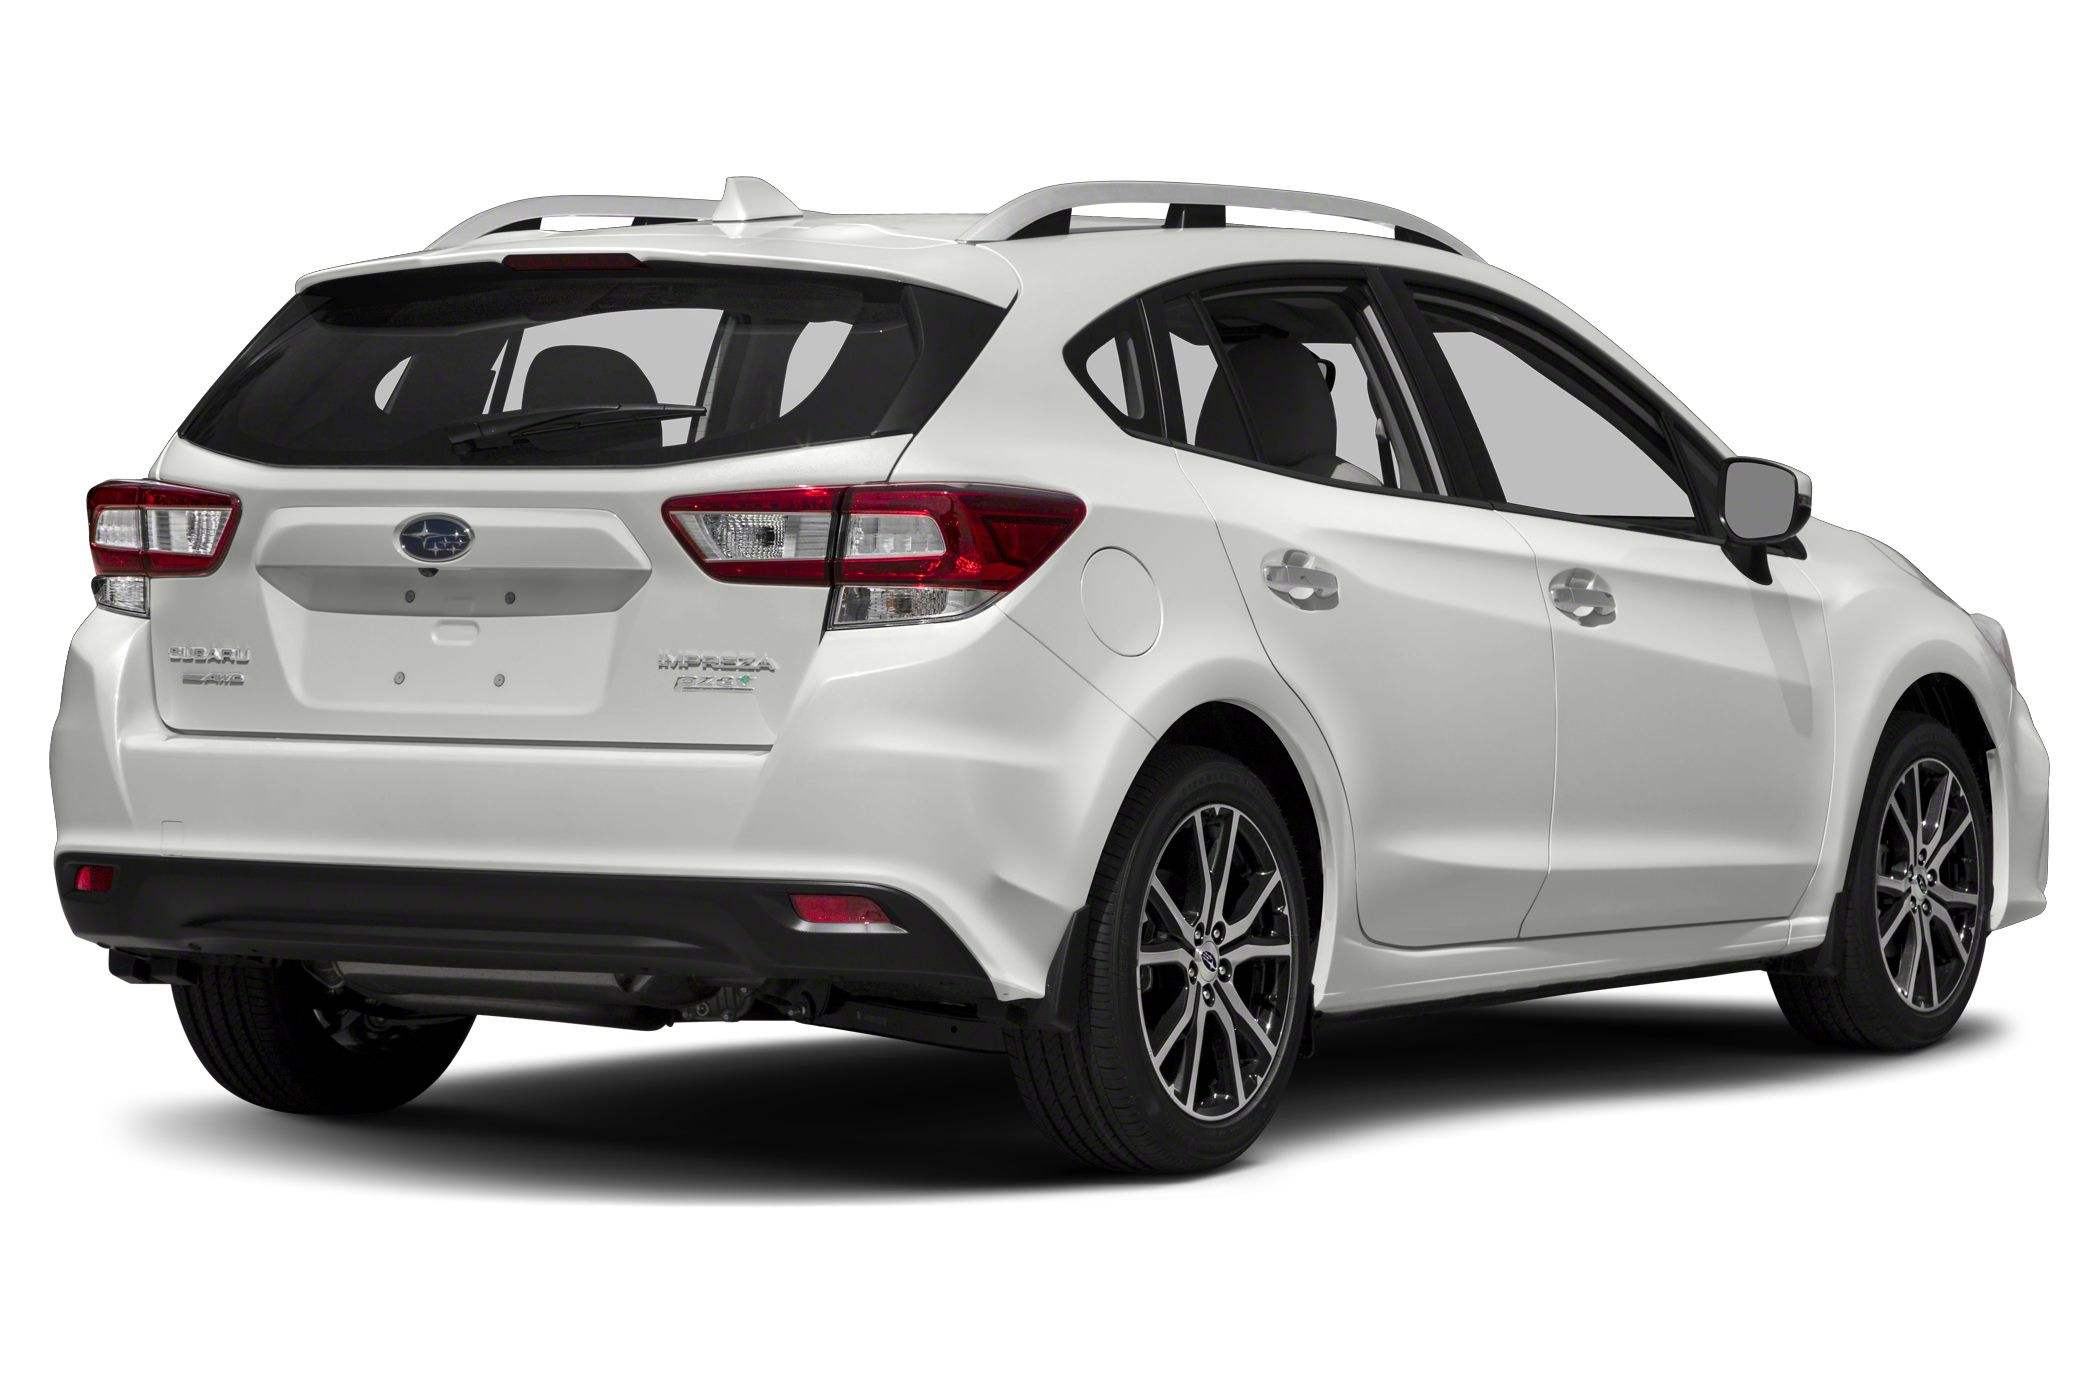 2018 Subaru Impreza Deals Prices Incentives Leases Overview